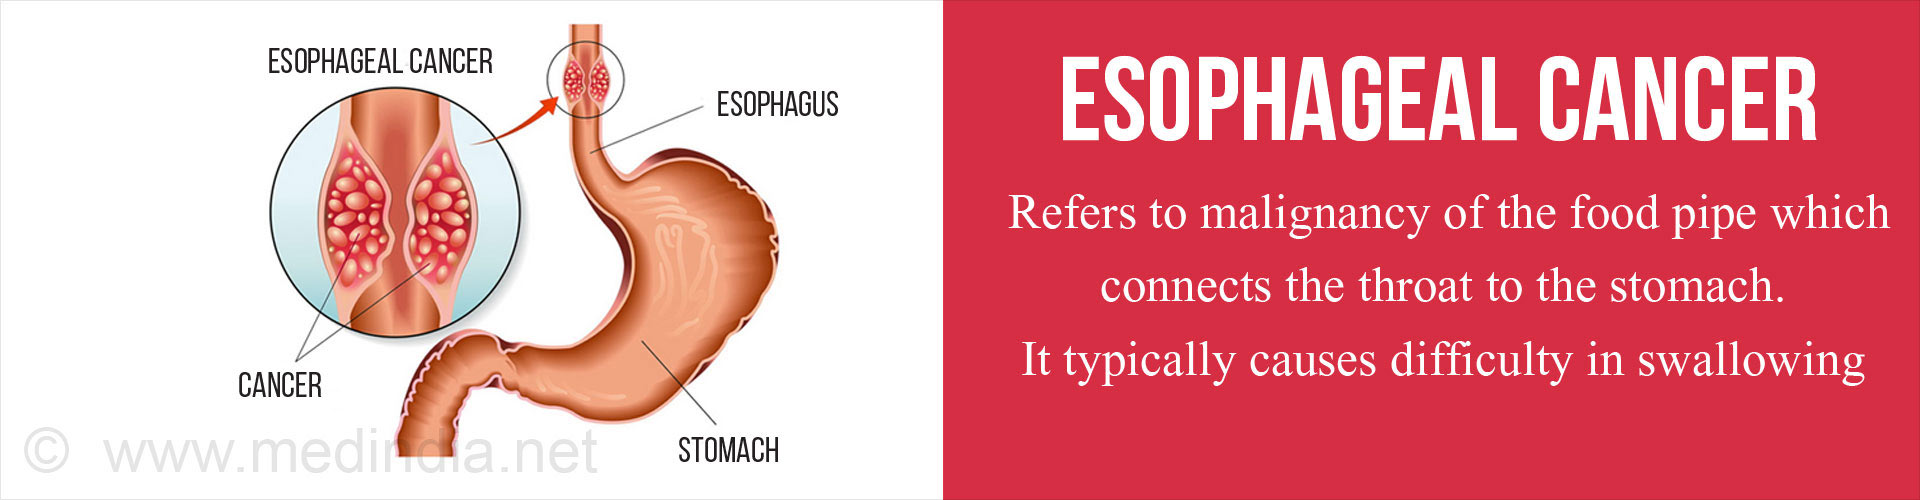 Esophageal cancer refers to malignancy of the food pipe which connects the throat to the stomach. It typically causes difficulty in swallowing